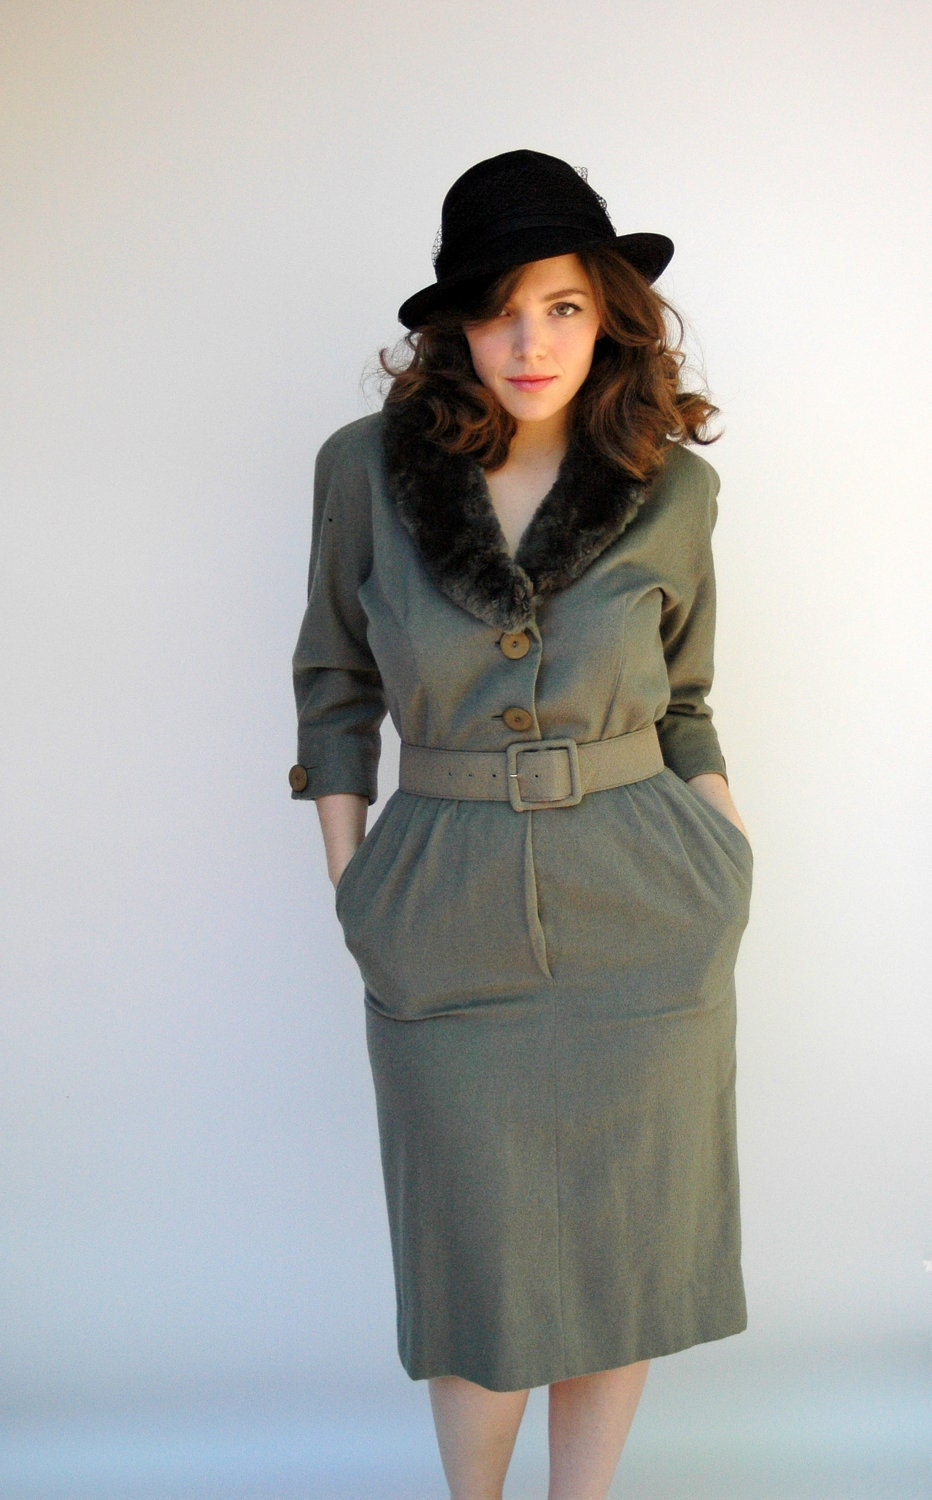 vintage moss green cashmere womens dress from 1940s with beaver collar